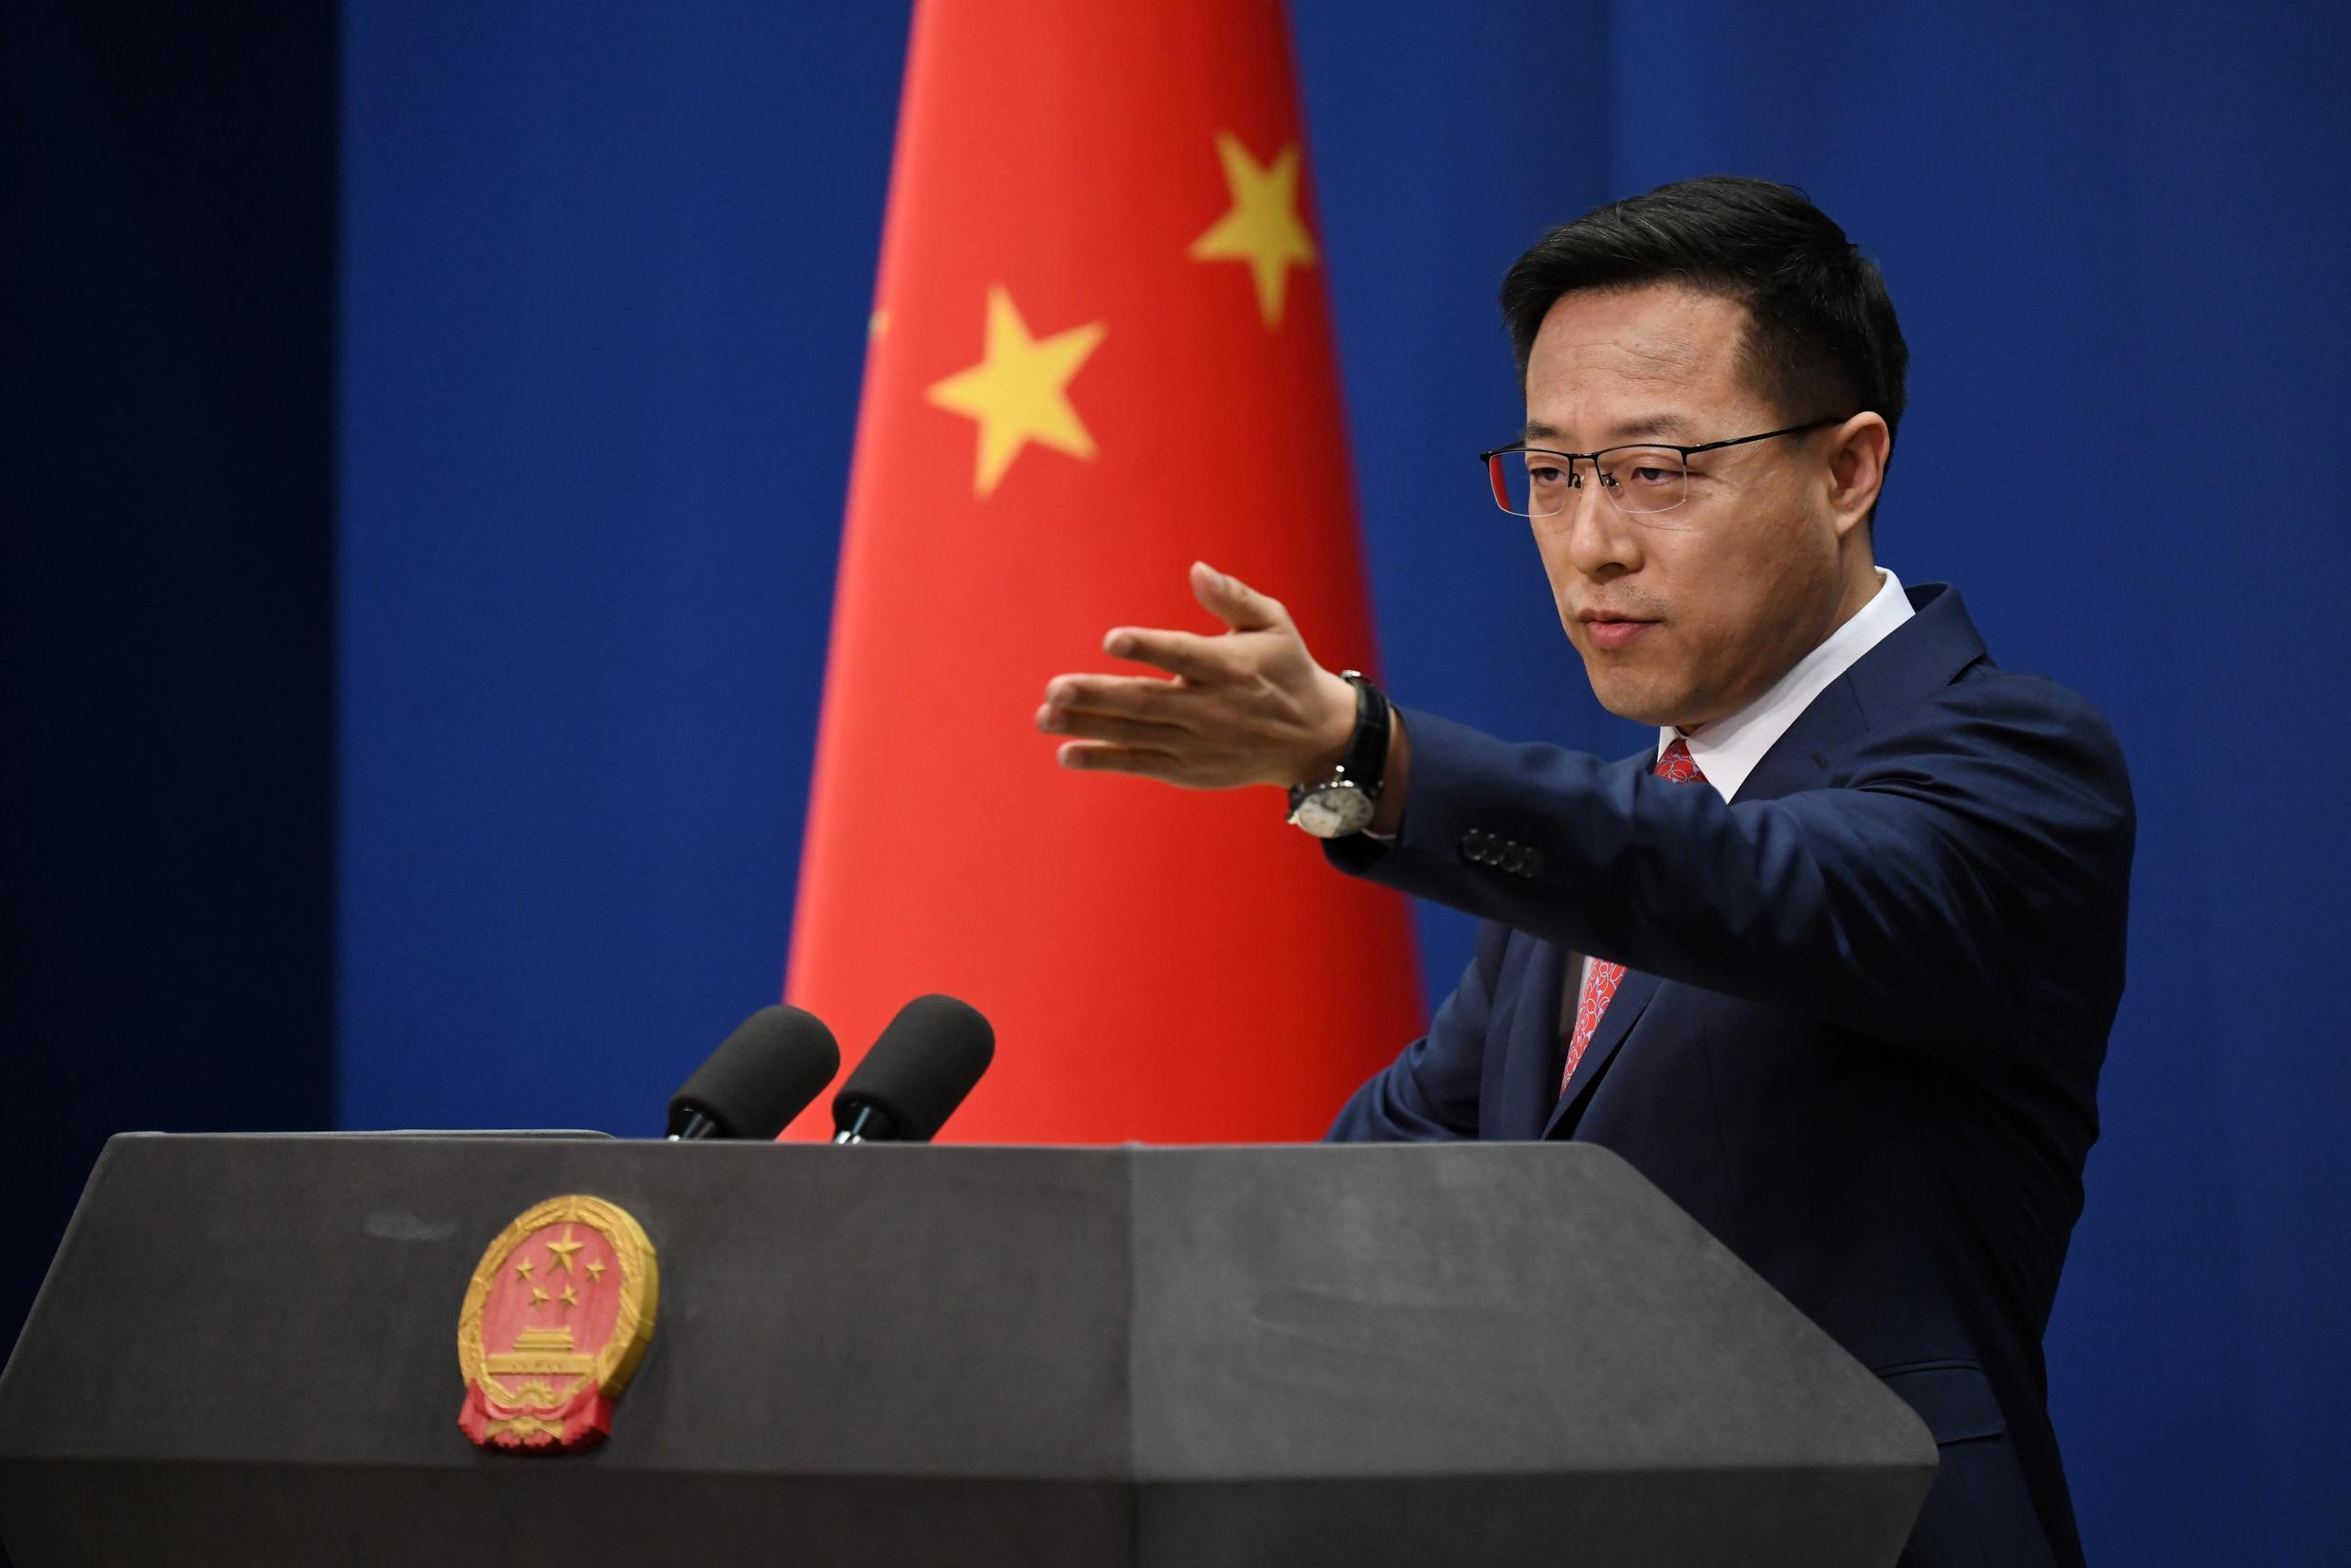 Chinese foreign ministry spokesman Zhao Lijian said Beijing's sanctions were a 'necessary and justified response'